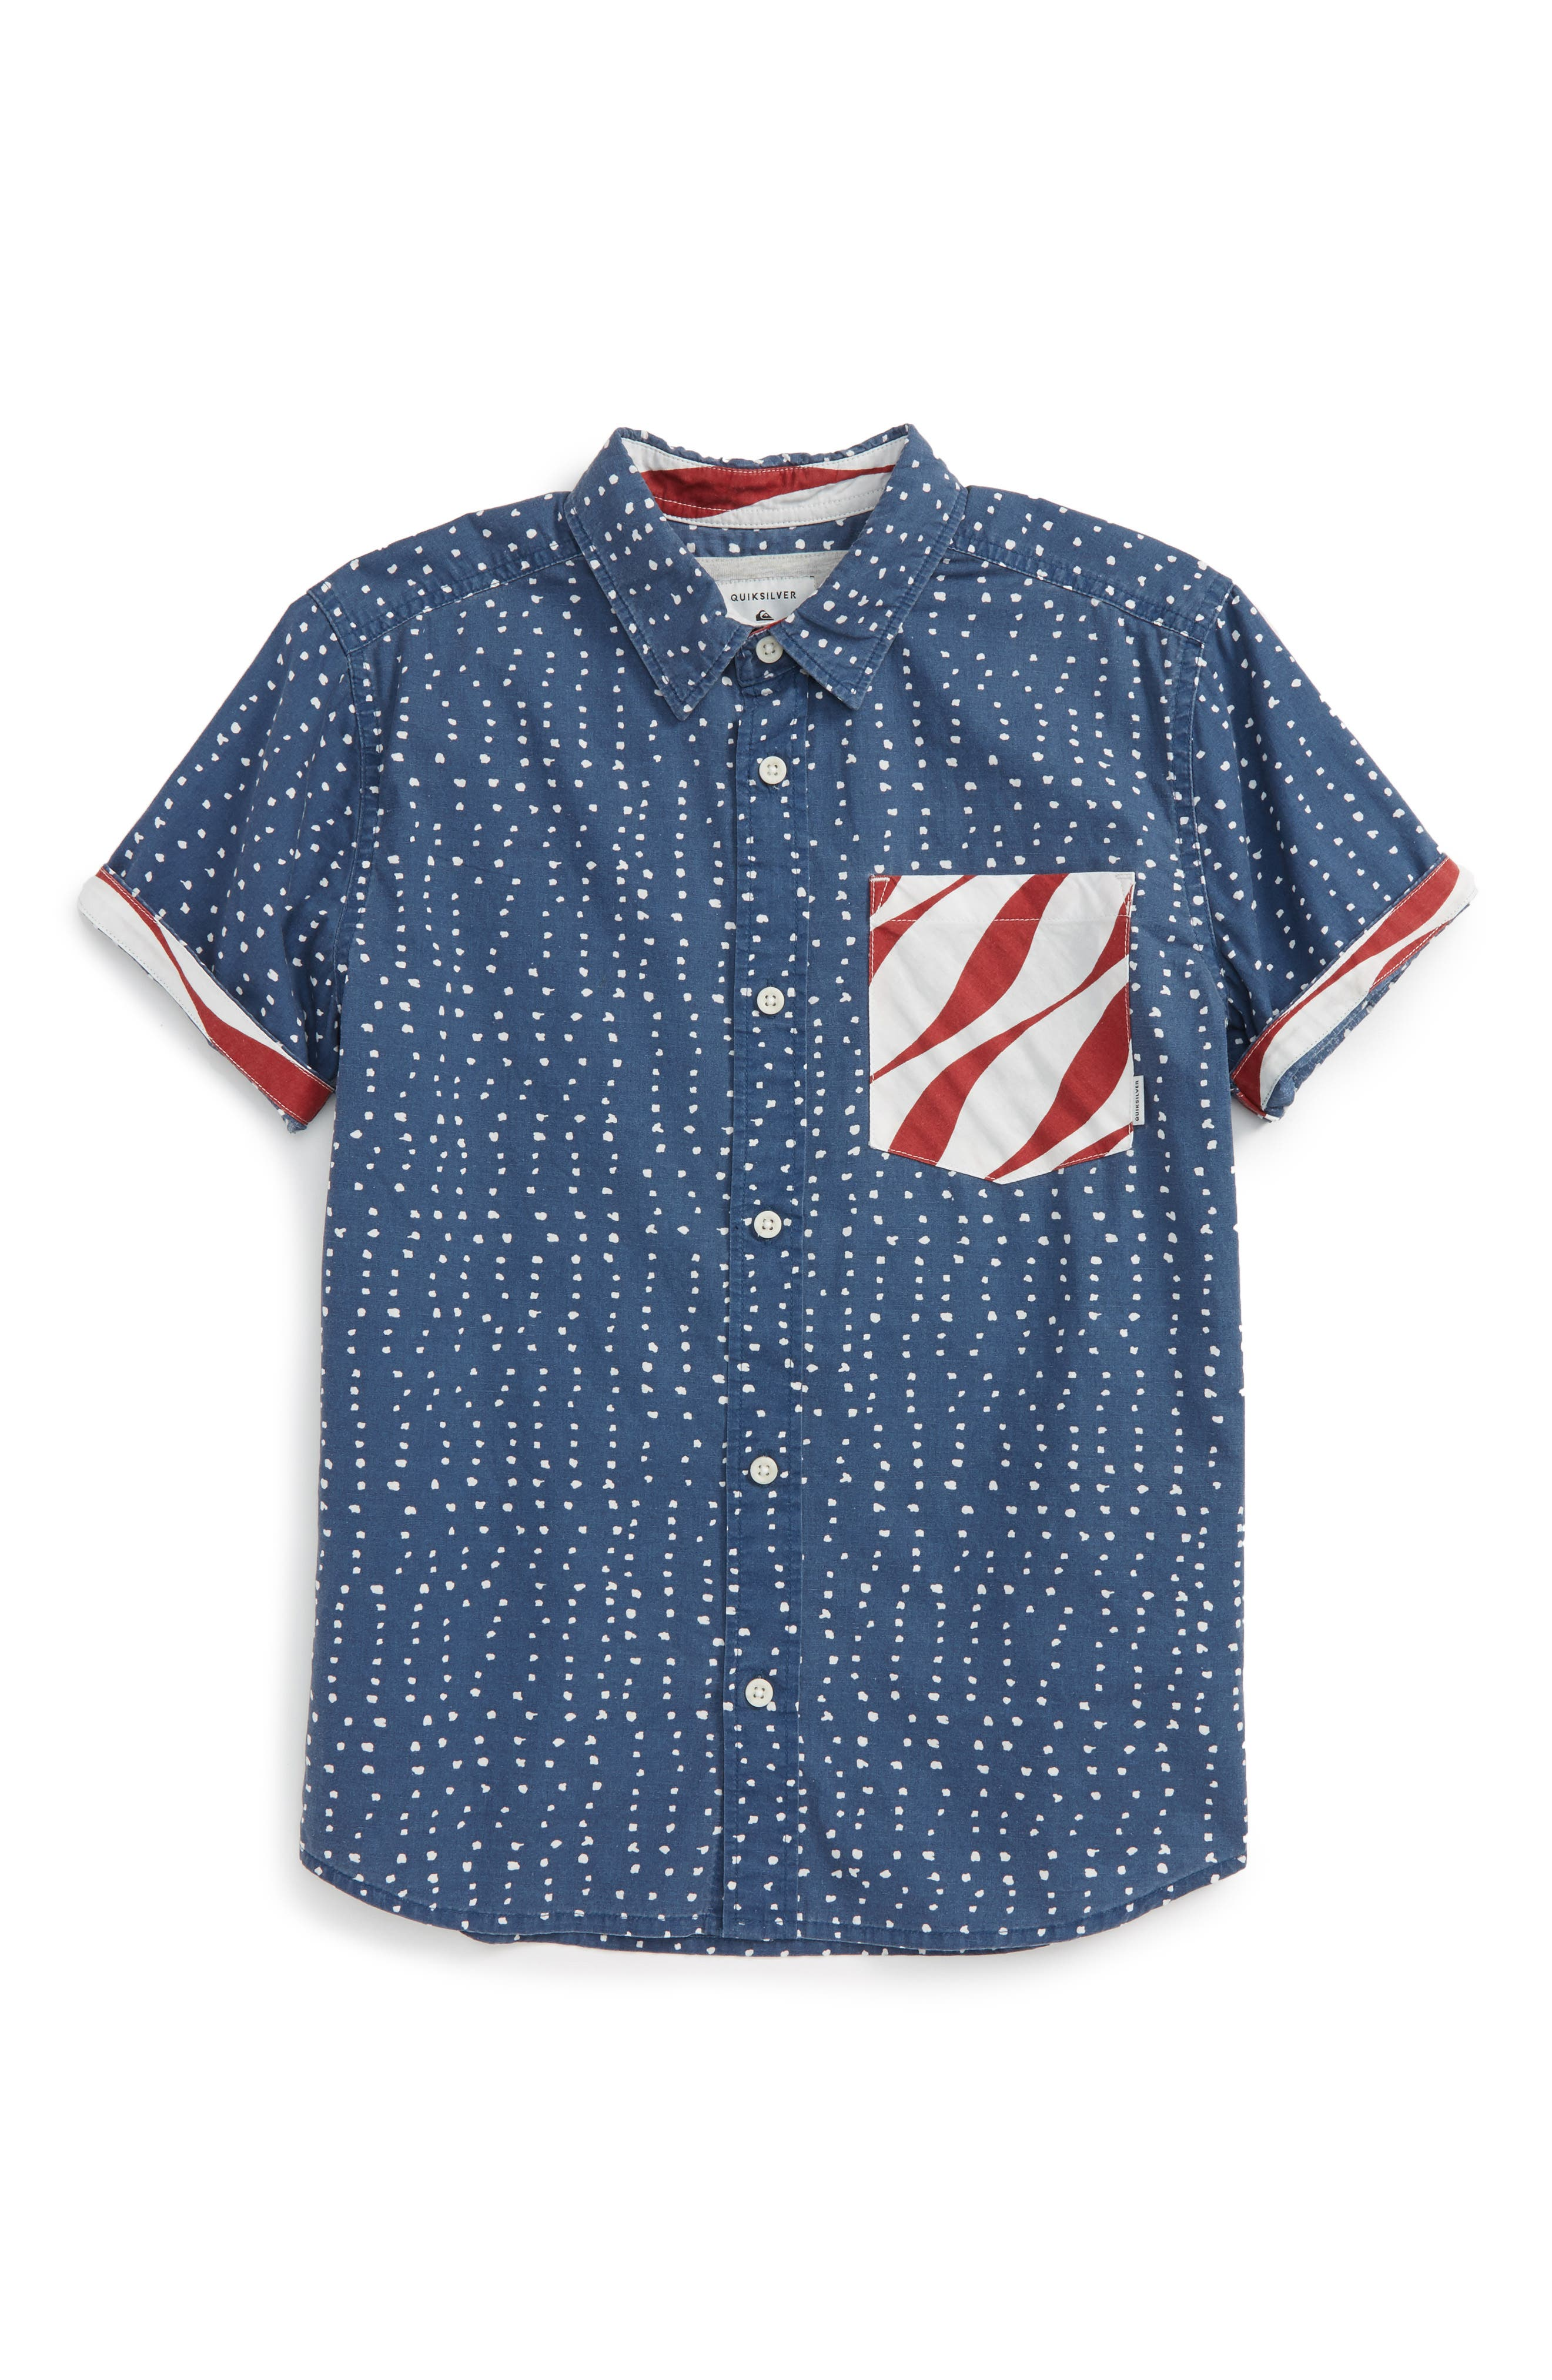 Quiksilver New American Short Sleeve Woven Shirt (Big Boys)